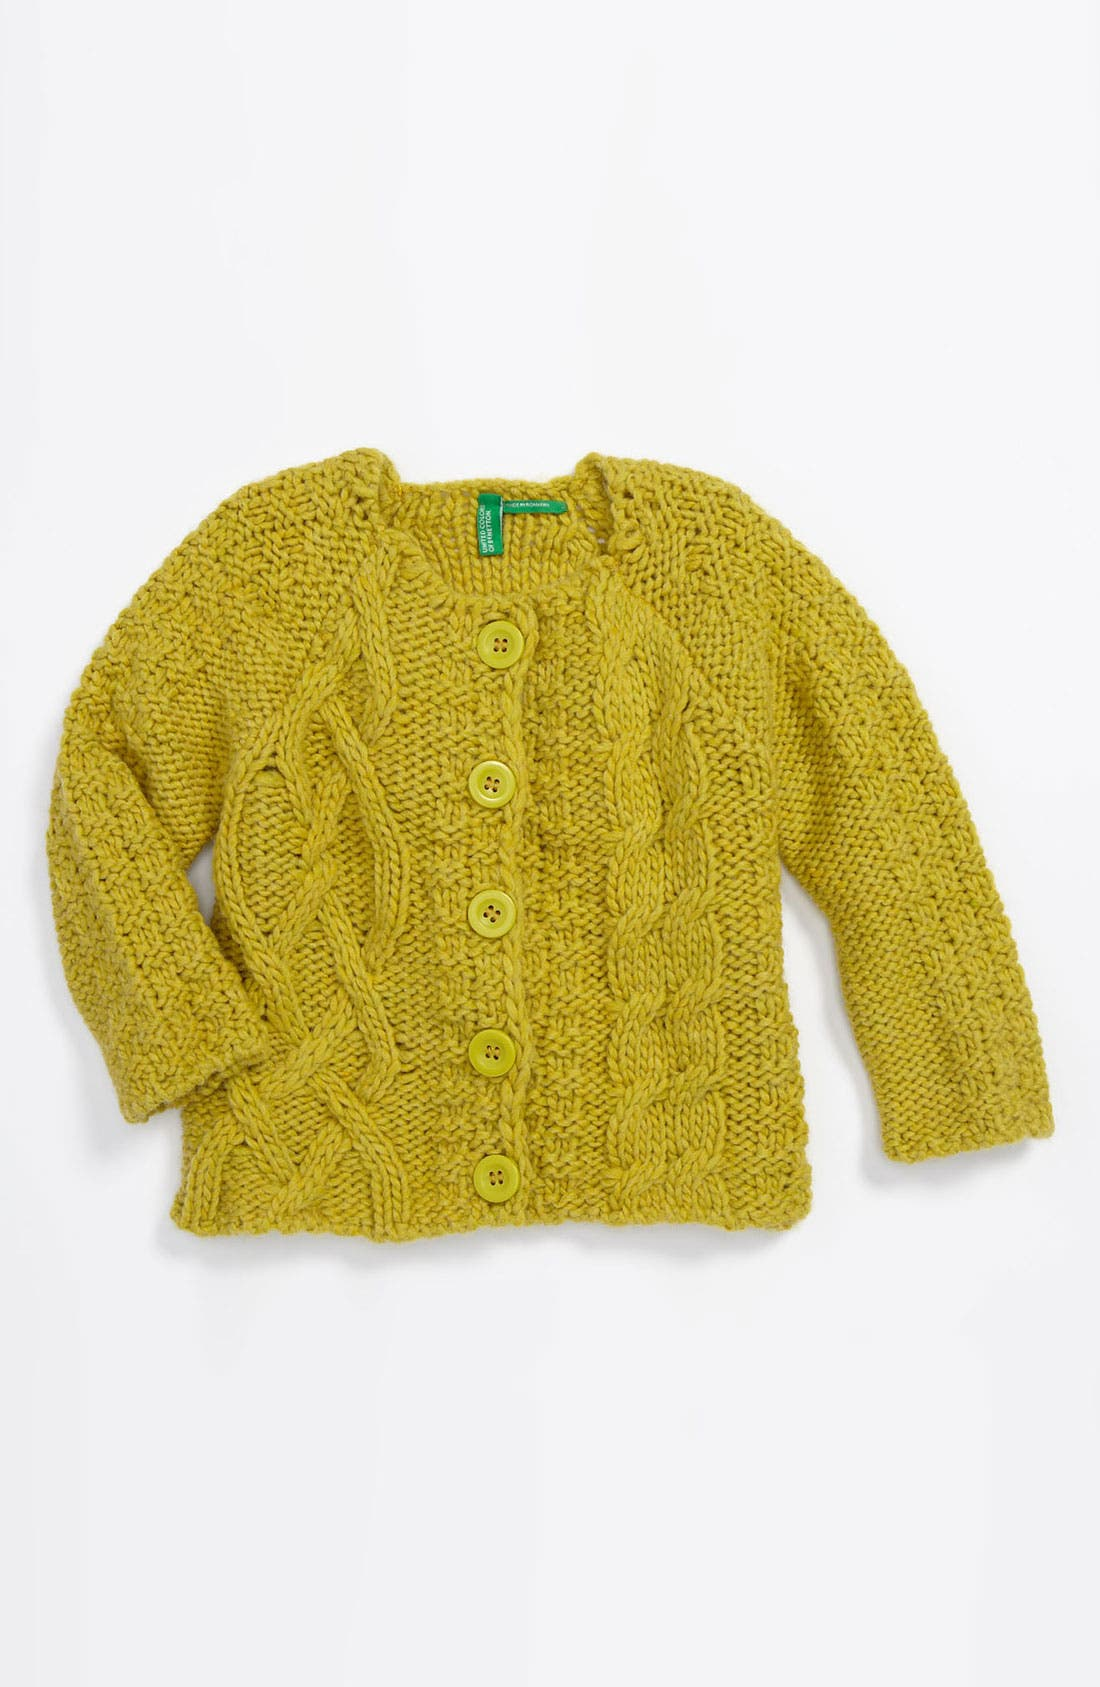 Main Image - United Colors of Benetton Kids Cable Knit Sweater (Infant)